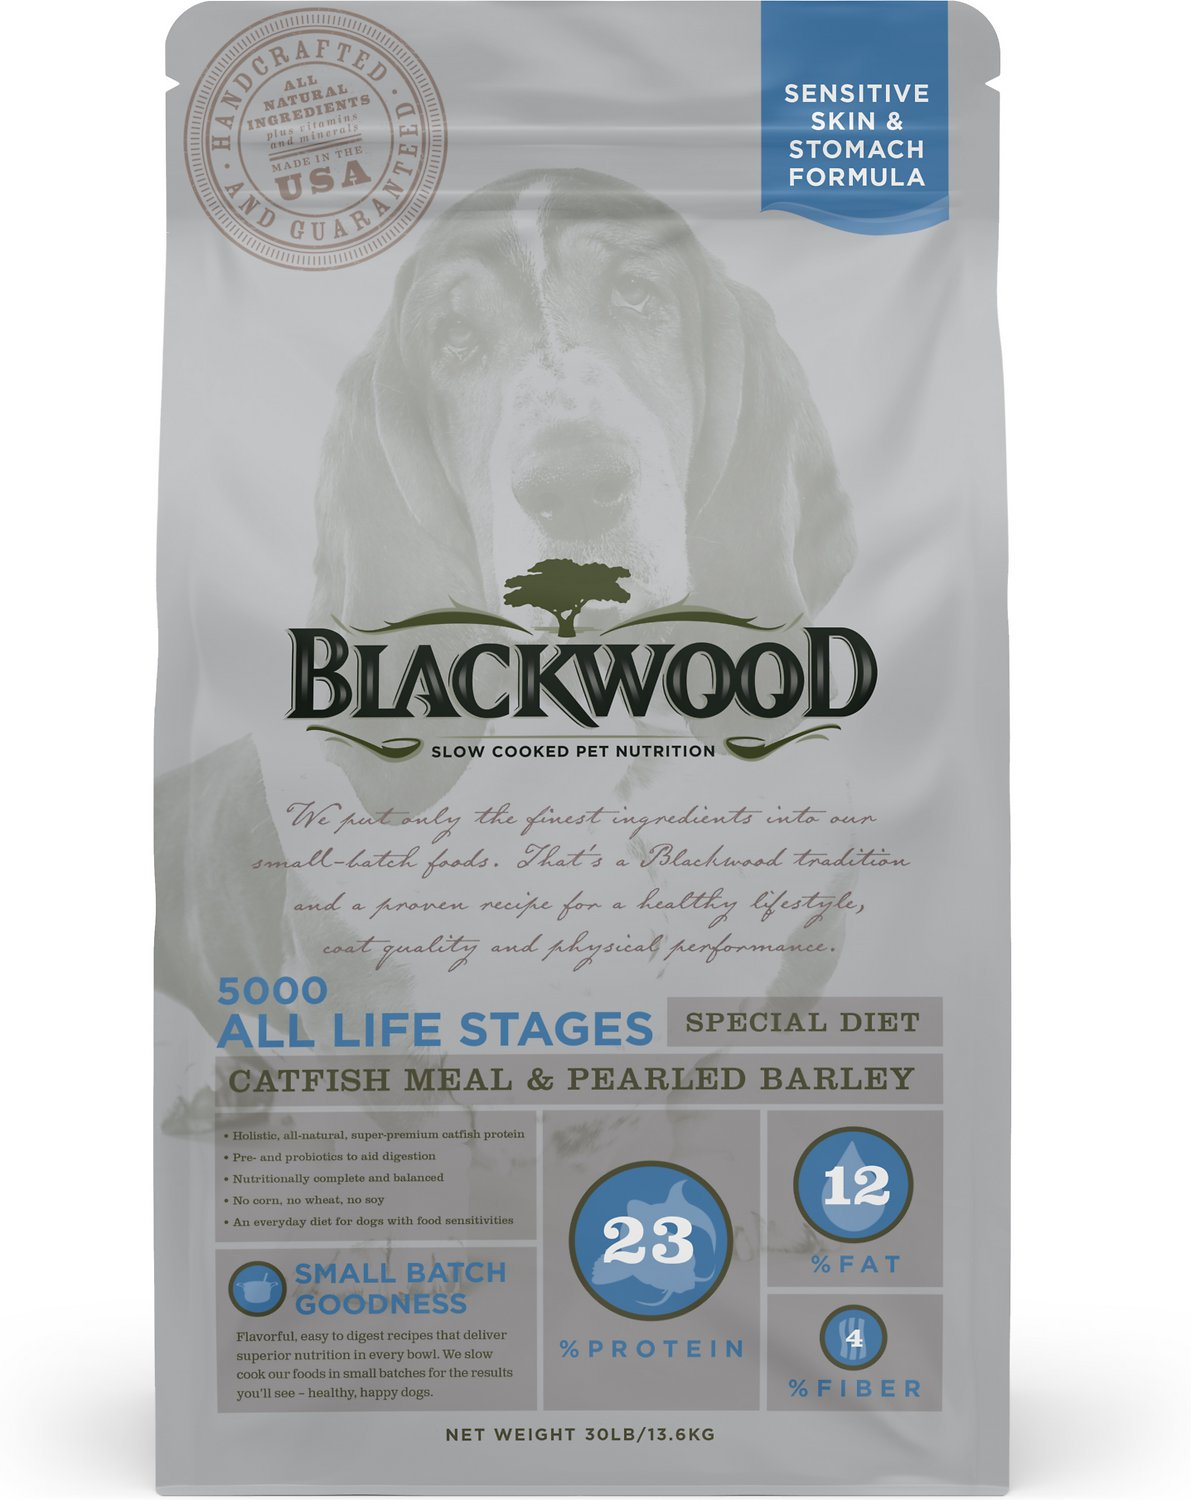 blackwood 5000 catfish meal pearled barley sensitive skin